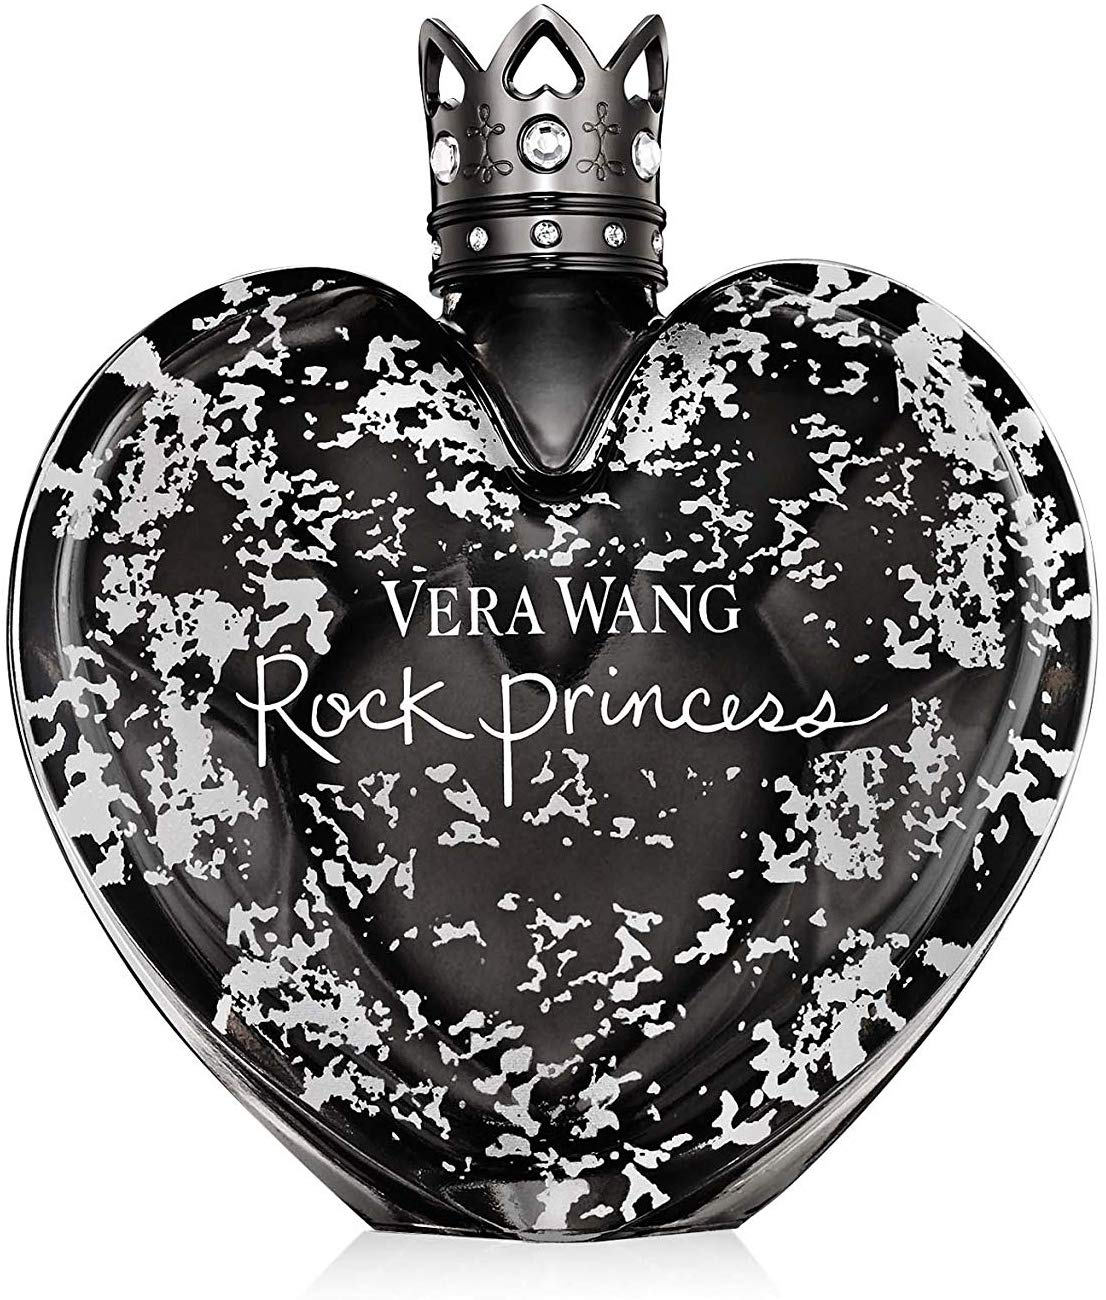 71% off Vera Wang Rock Princess Eau de Toilette Spray,100 ml